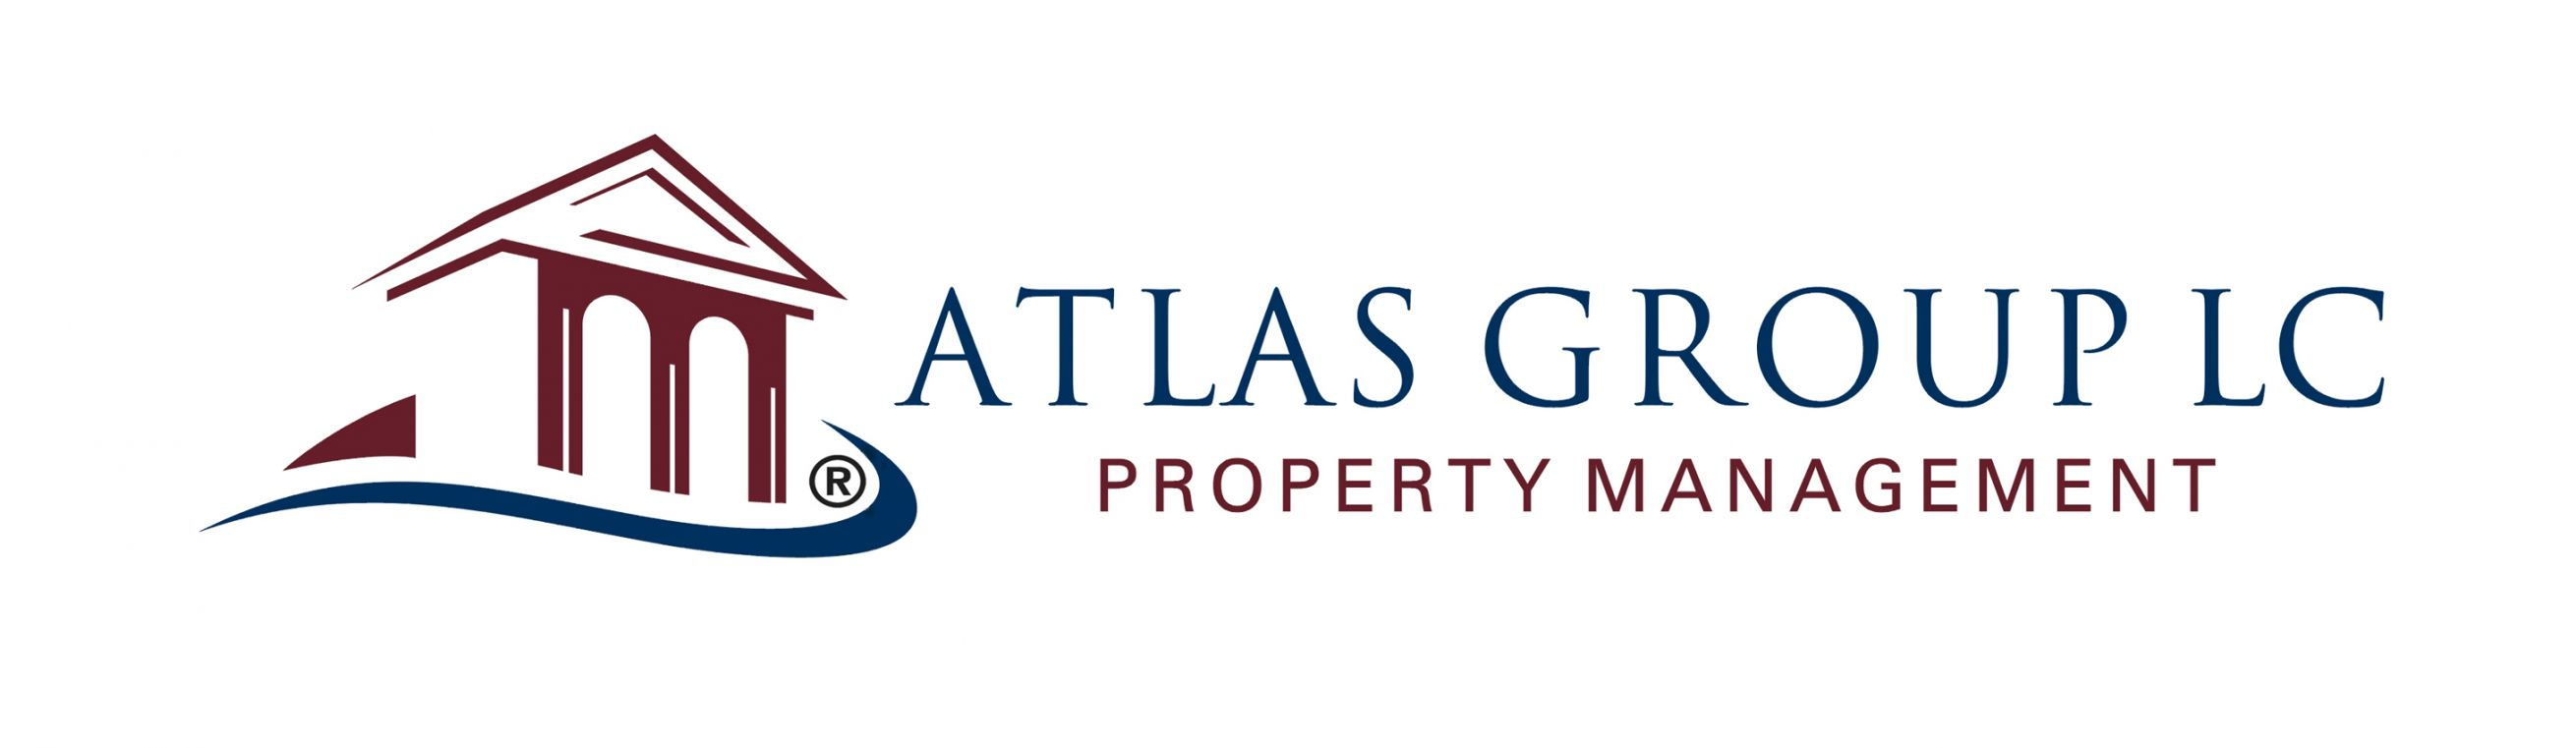 Atlas Group LC - Las Vegas Property Management